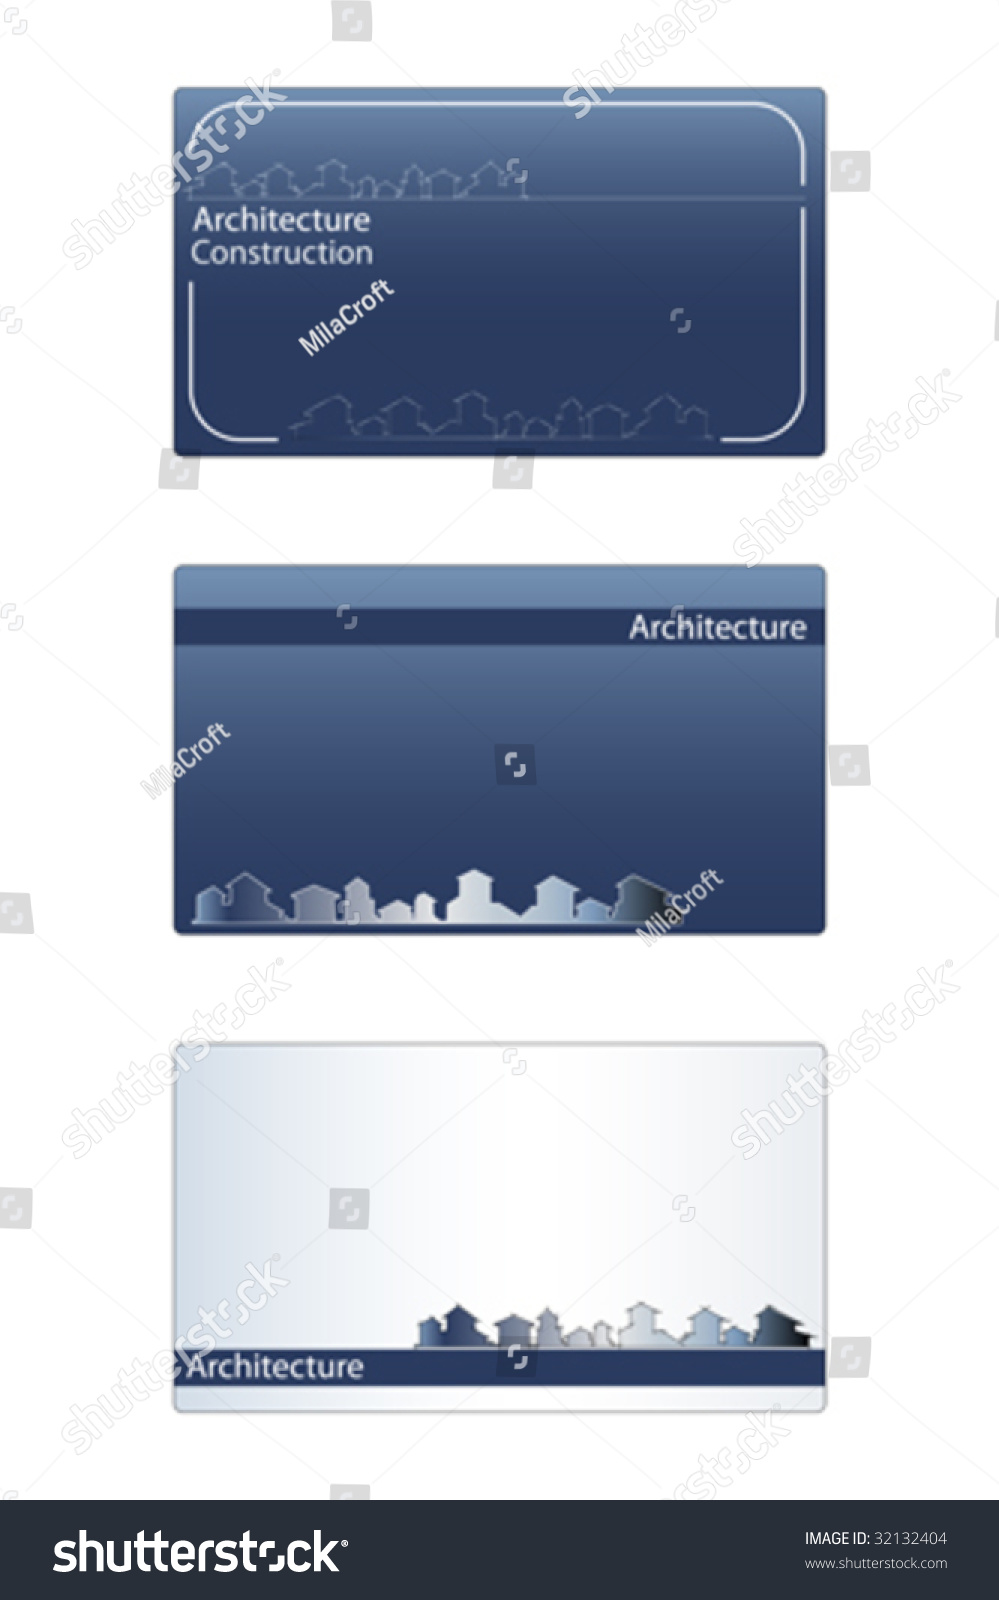 Business card real estate architecture construction stock vector business card for real estate architecture construction business labels useful magicingreecefo Image collections